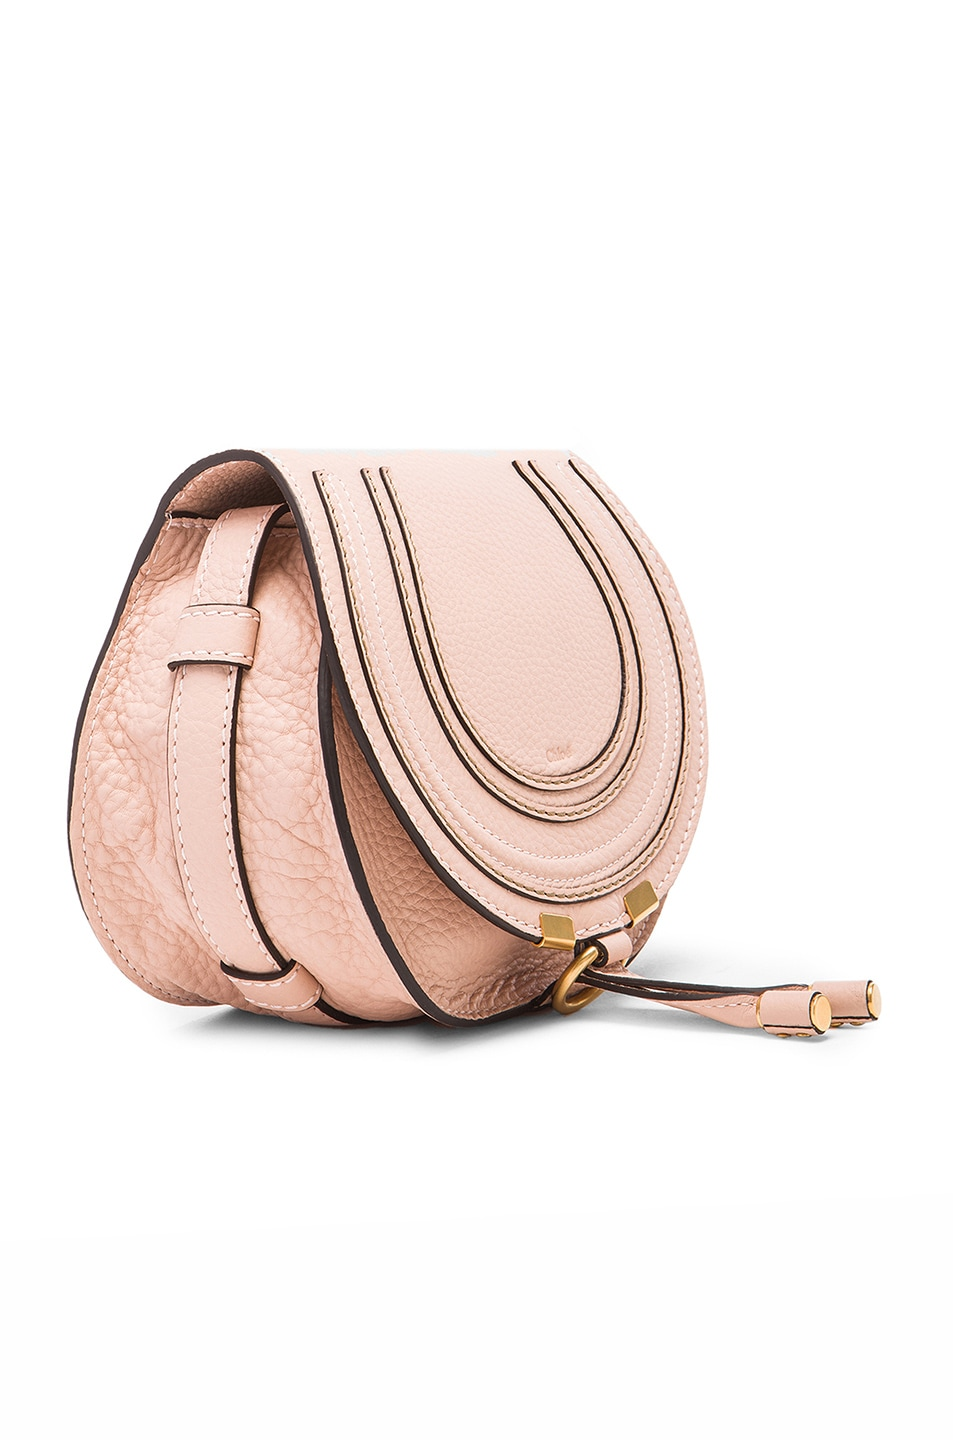 Image 4 of Chloe Small Marcie Grained Calfskin Saddle Bag in Blush Nude